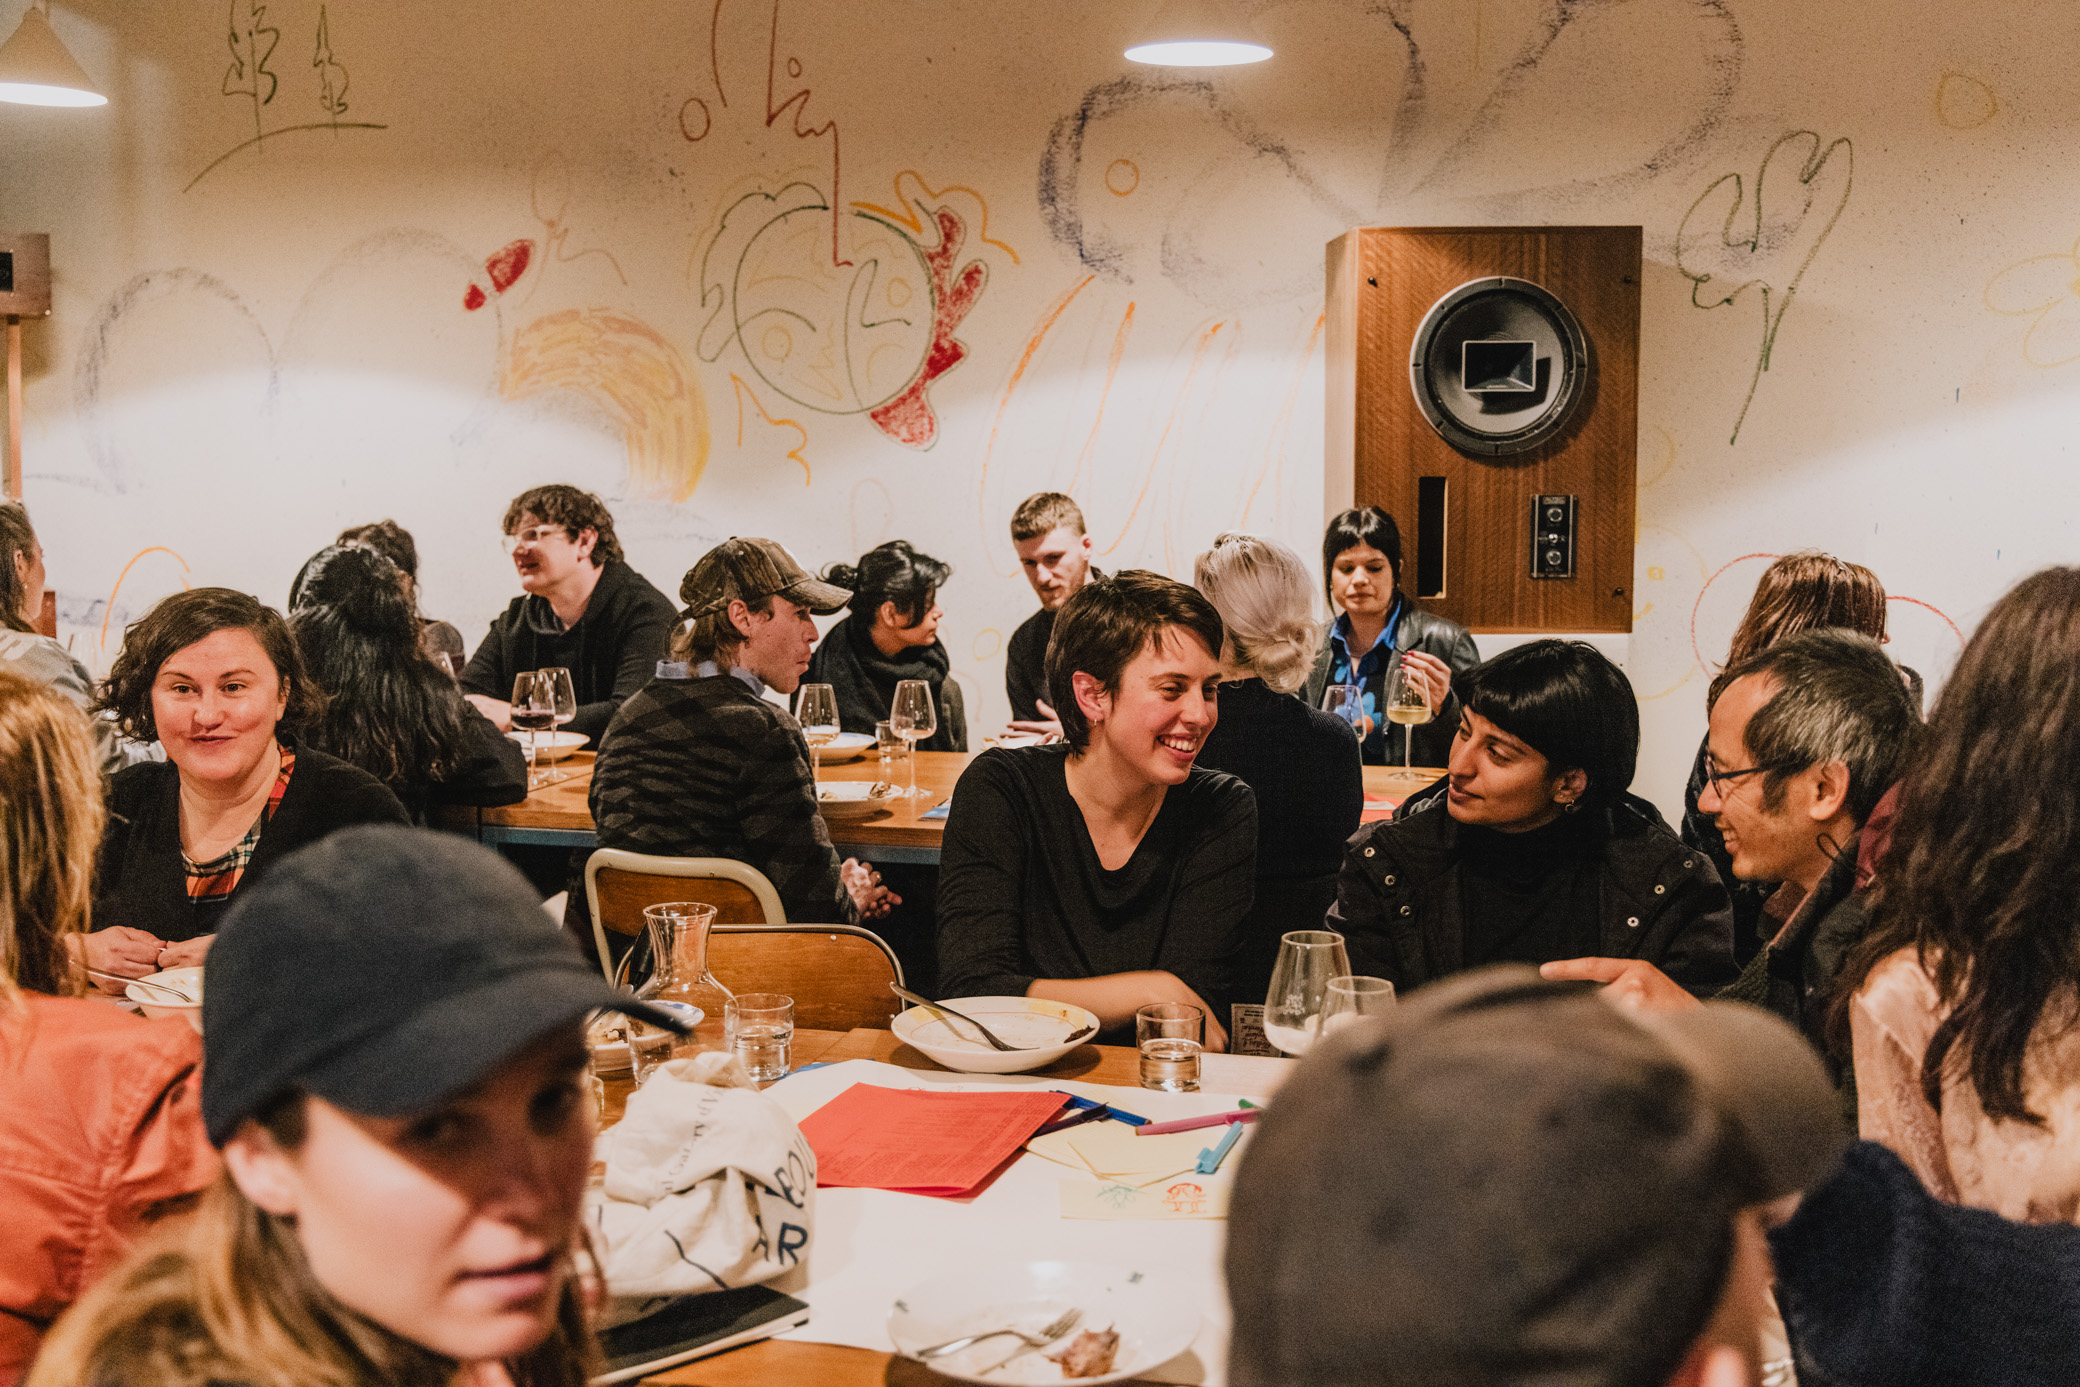 image of dinner attendees